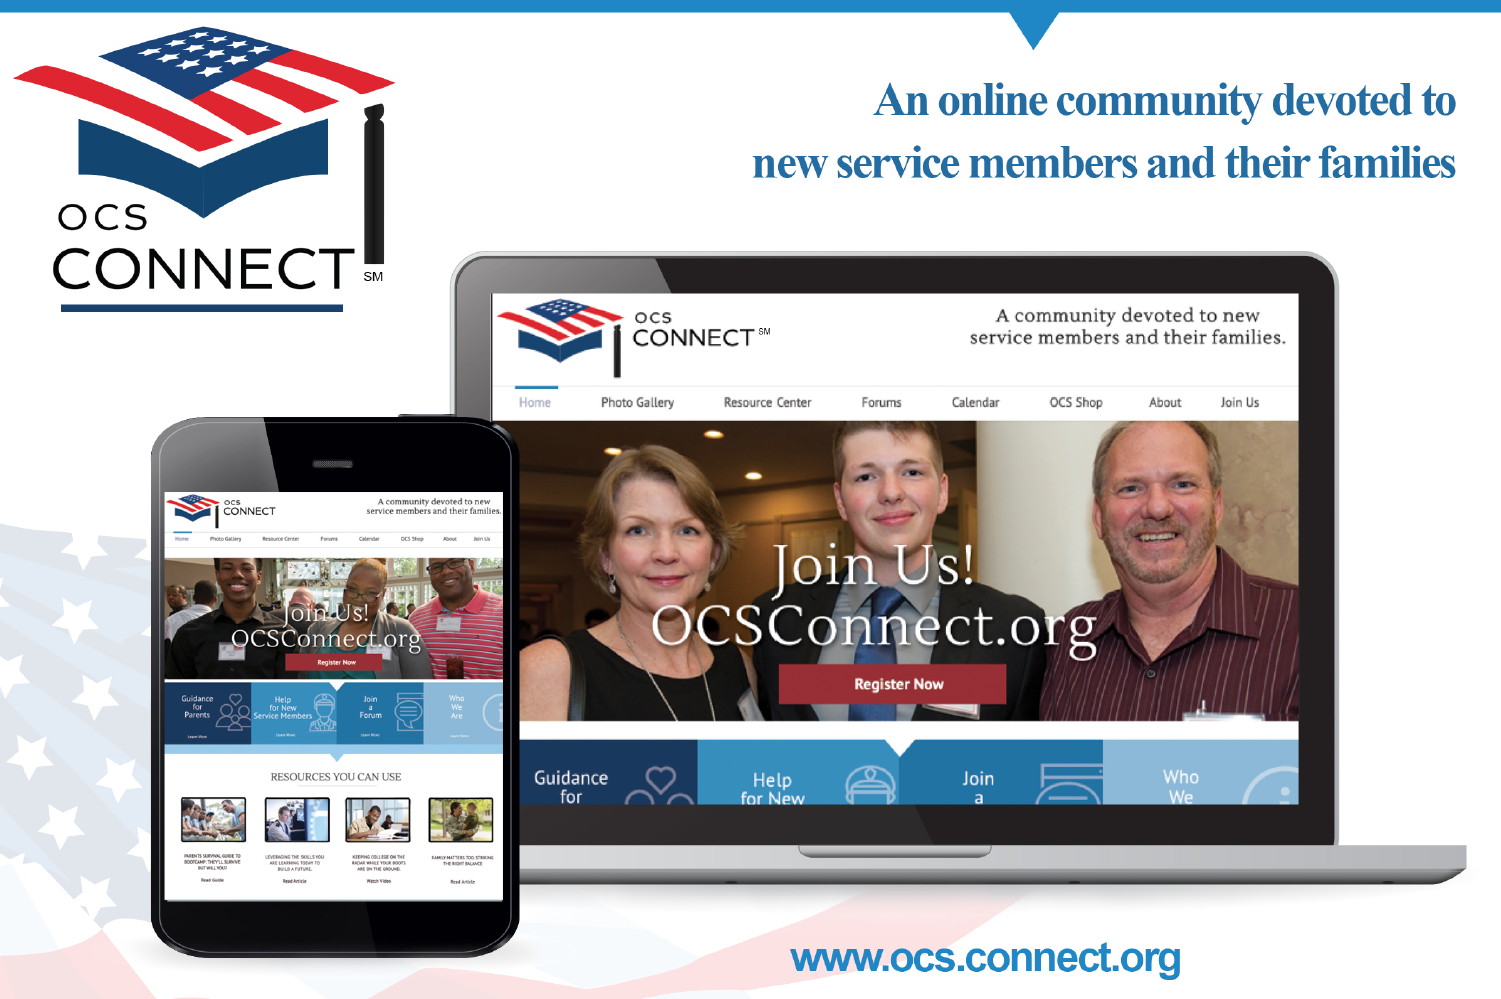 OCS Connect is Live